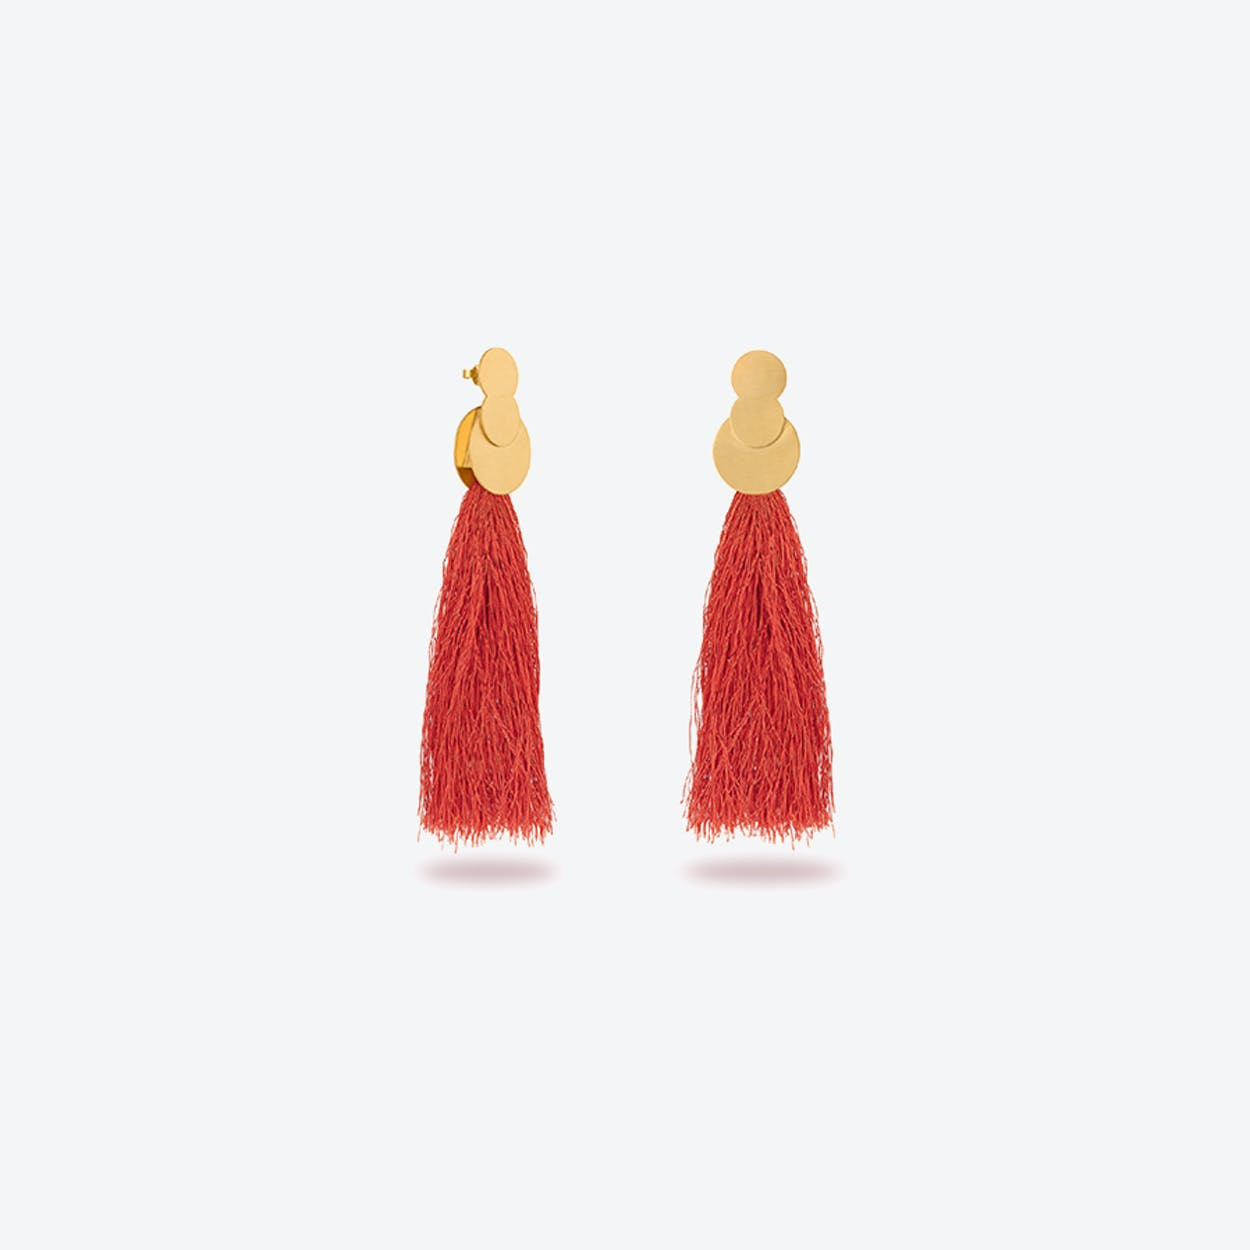 La Nuit Earrings in Coral